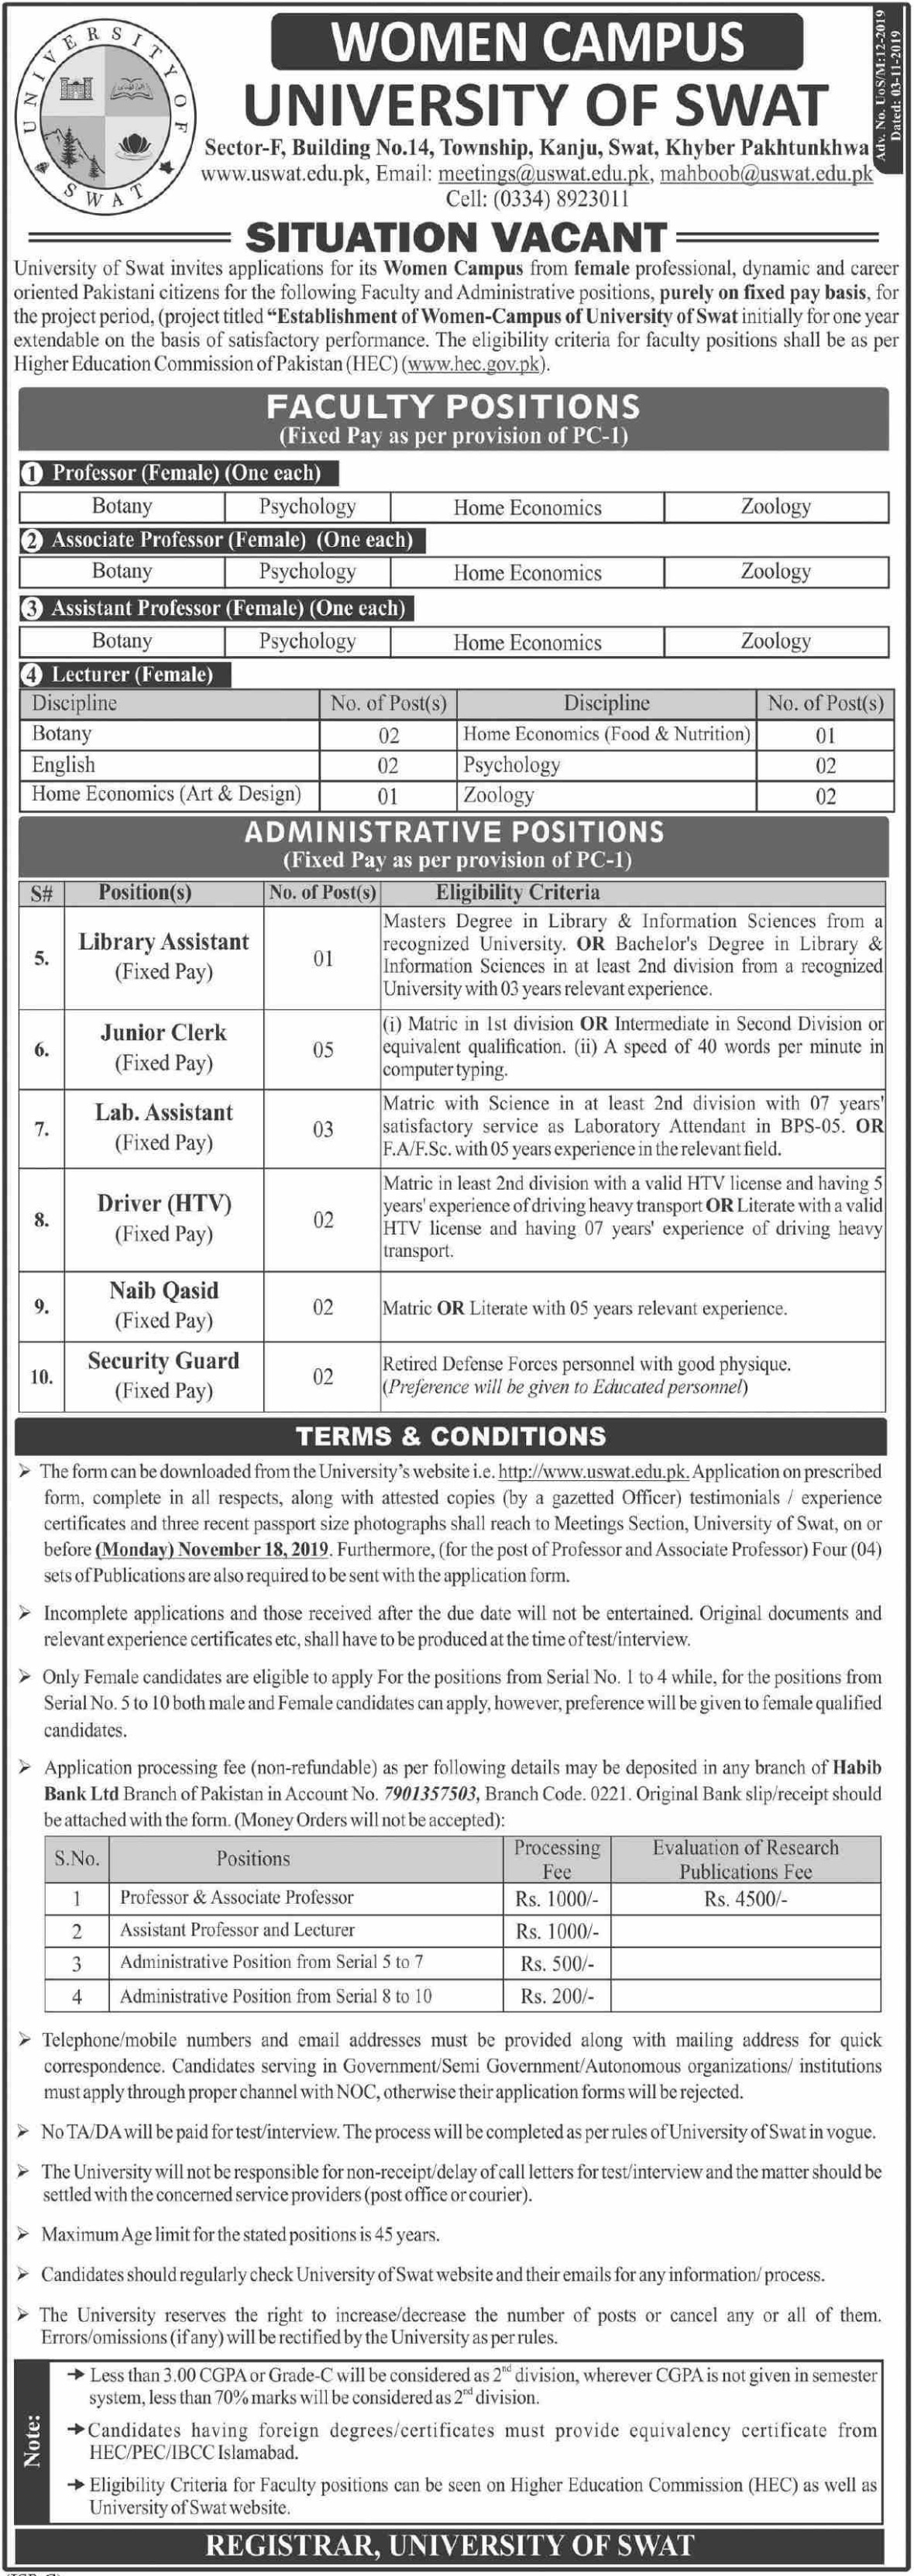 University of Swat Jobs 2019 Women Campus